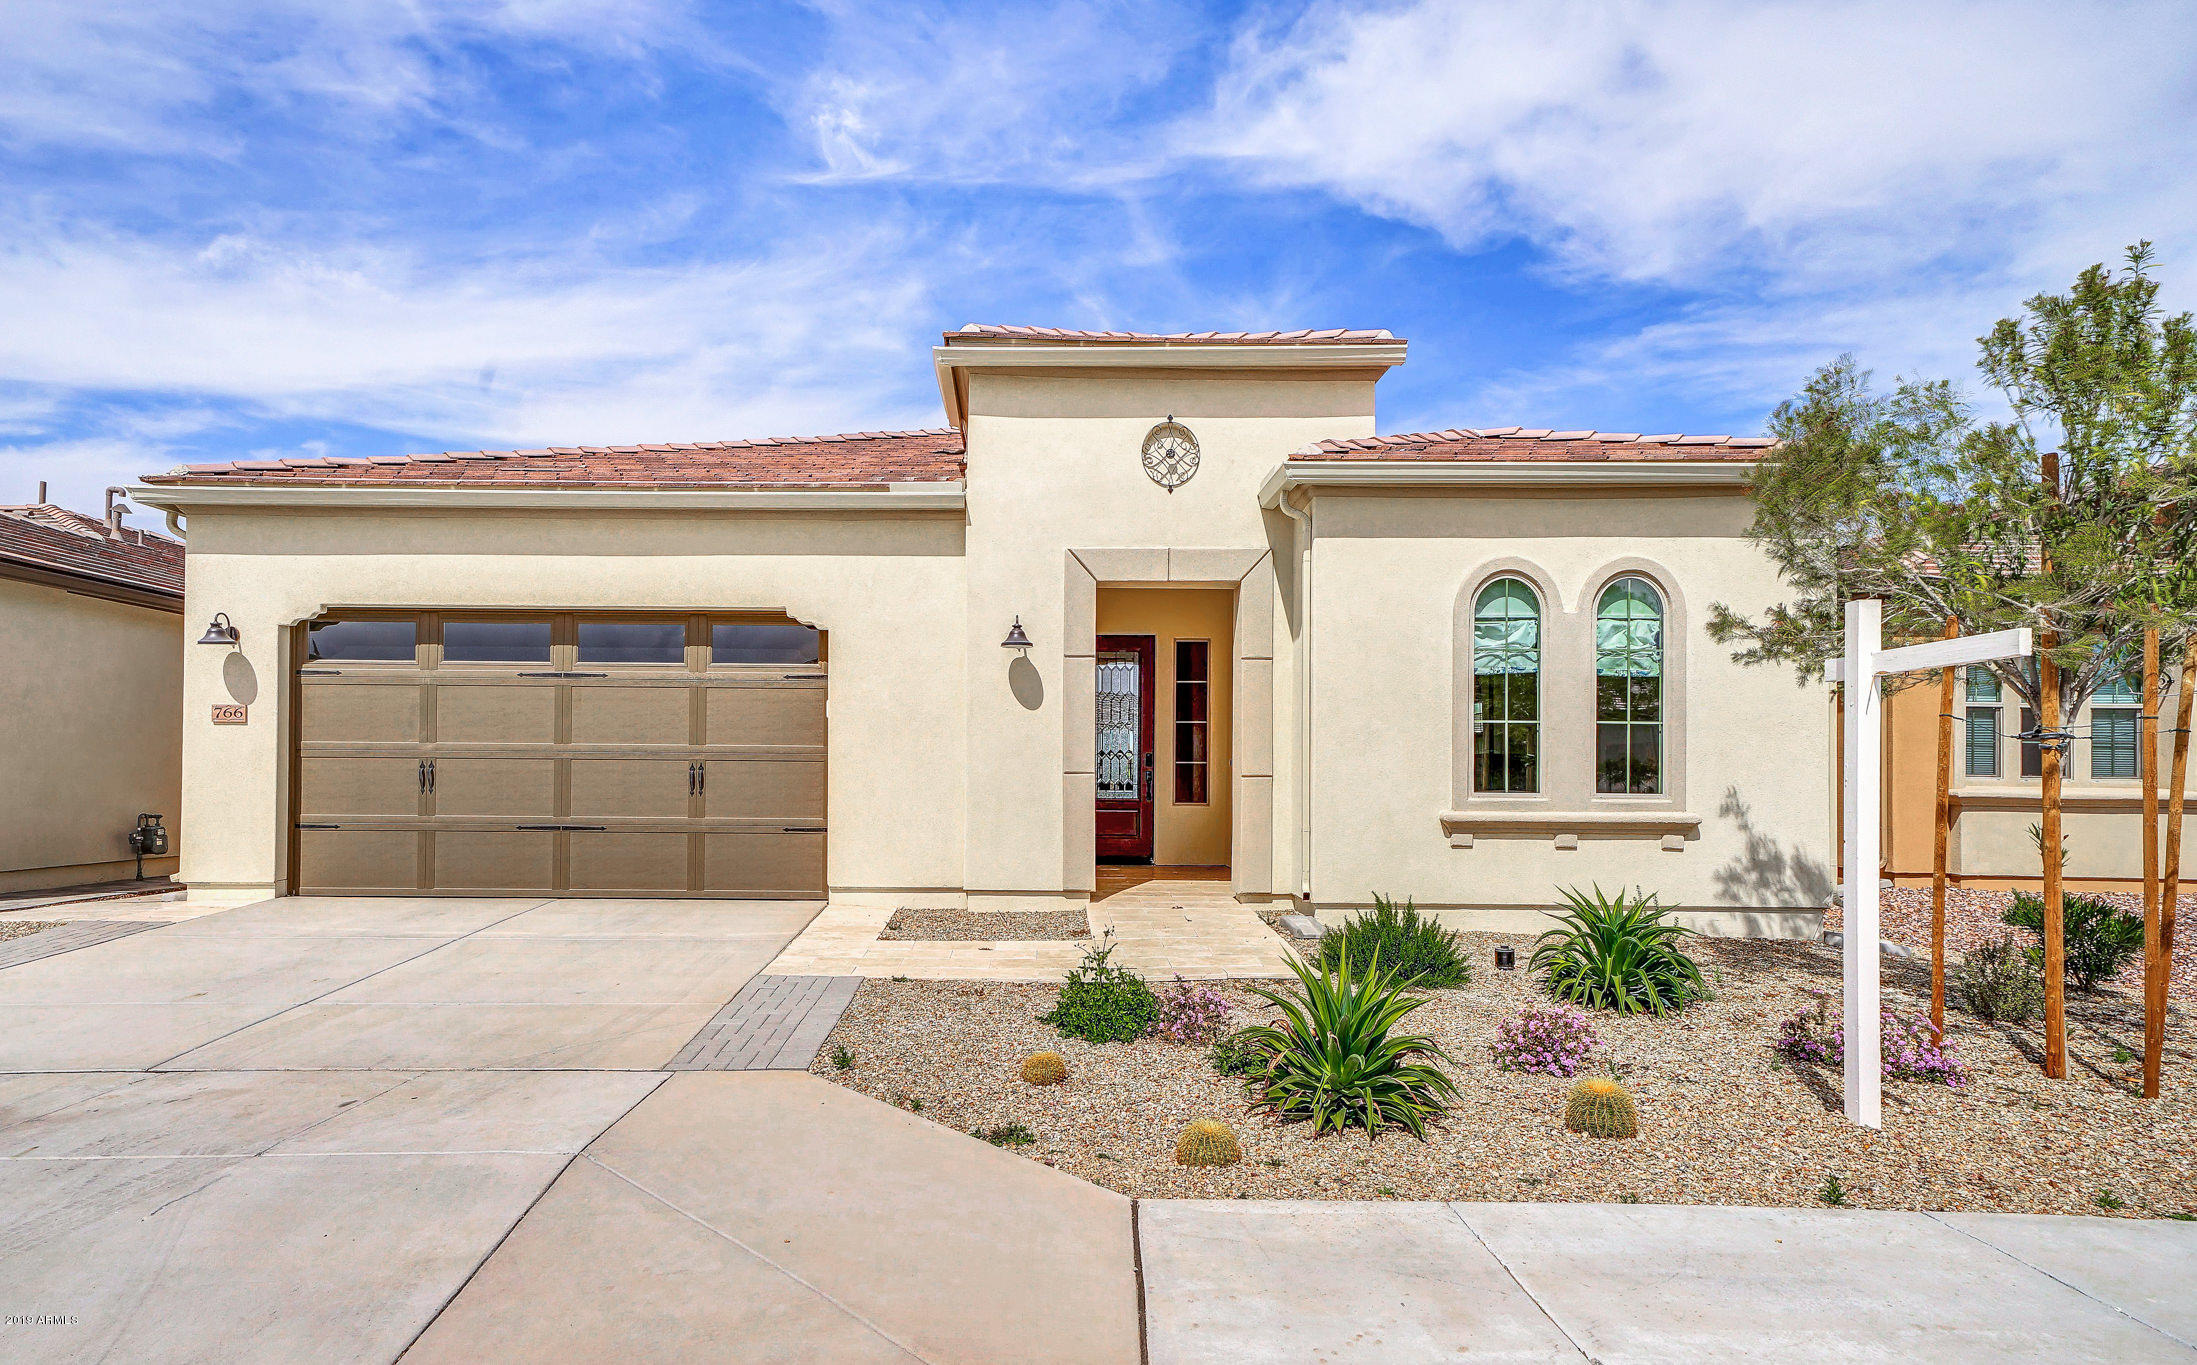 Photo of 766 E Fruitstand Way, San Tan Valley, AZ 85140